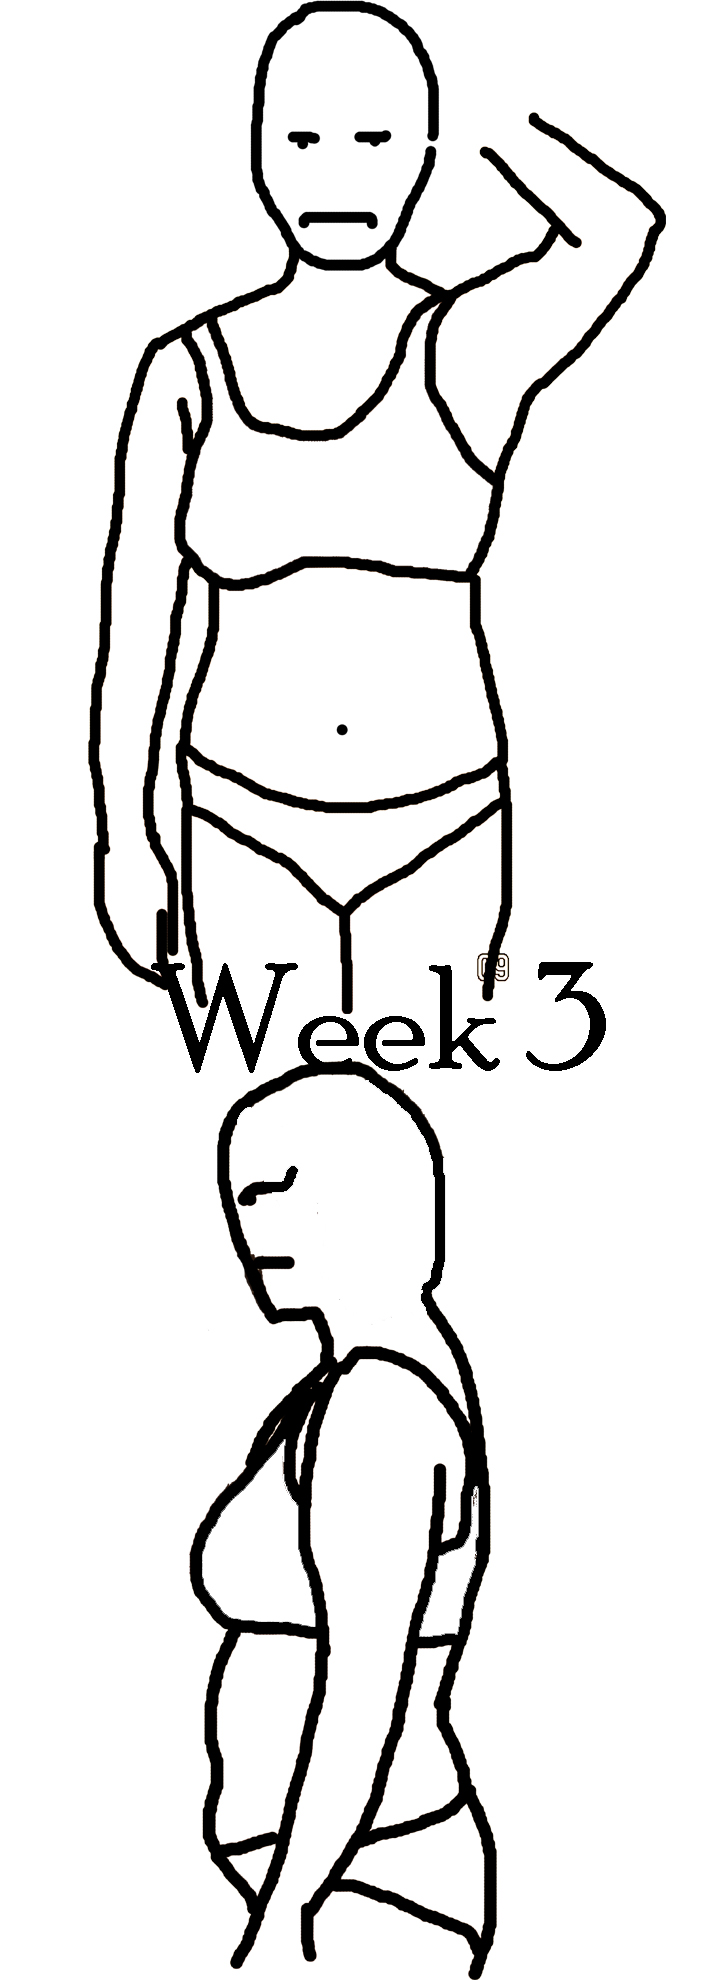 435 week 3 outline 3 outline or make notes of the information you think should be incorporated in  the  a week, during the months of march through june pre-training program  scores of 385 on the lsat and 750 on the combined gre climbed to 435 and  895.